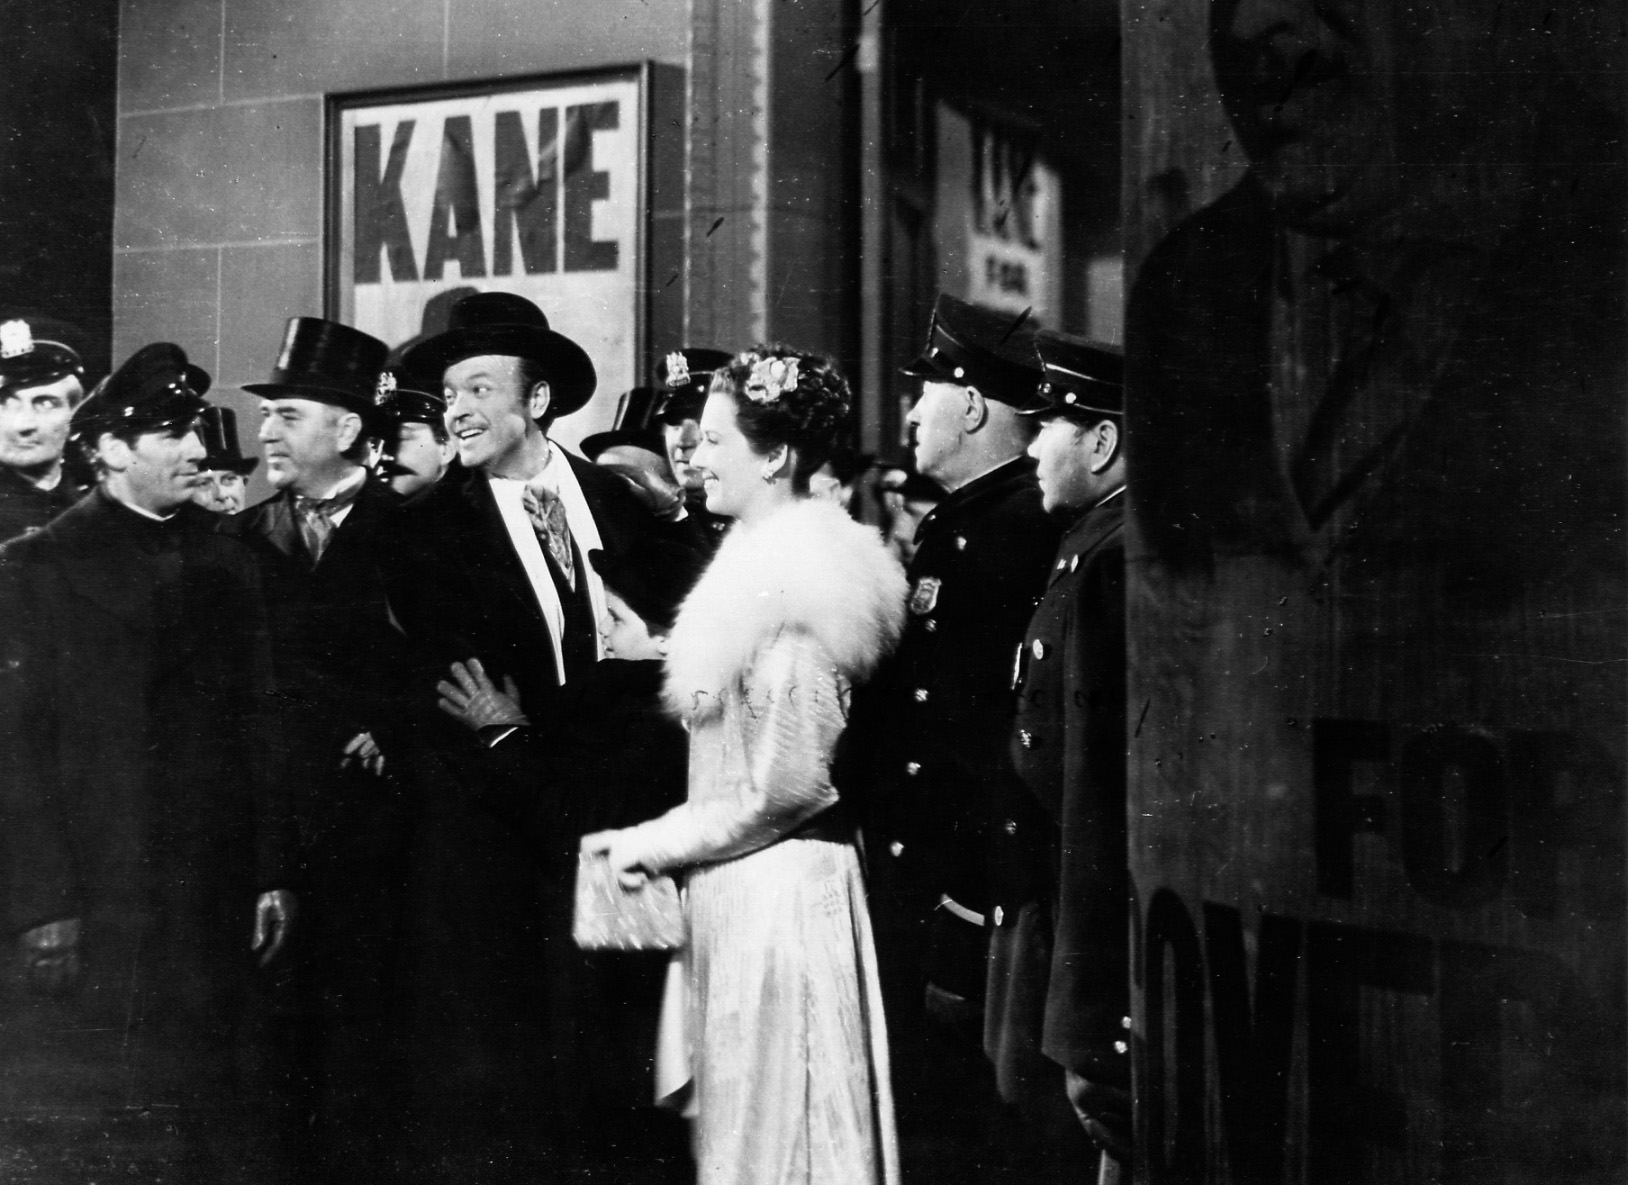 an analysis of citizen kane a film by orson welles 'citizen kane' at 70: the legacy of the film and its director  the whirlwind surrounding the making of citizen kane is well known orson welles, the brash prodigy of stage and radio, earned .